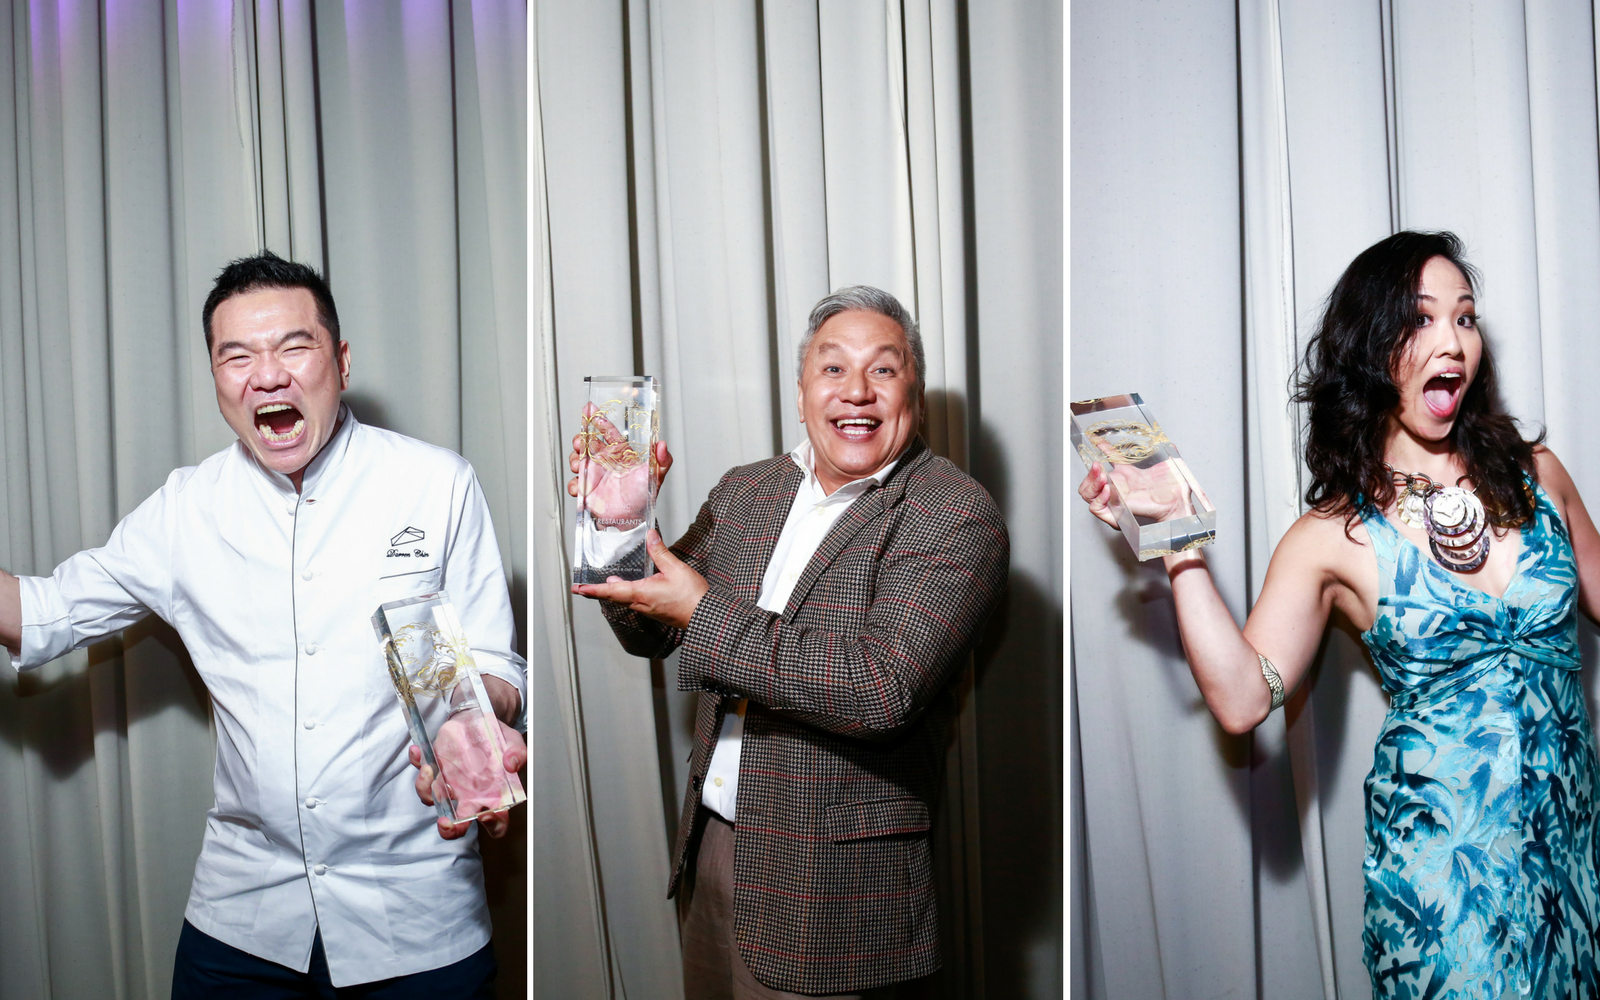 Video: A Celebratory Moment With All The T.Dining Award Winners